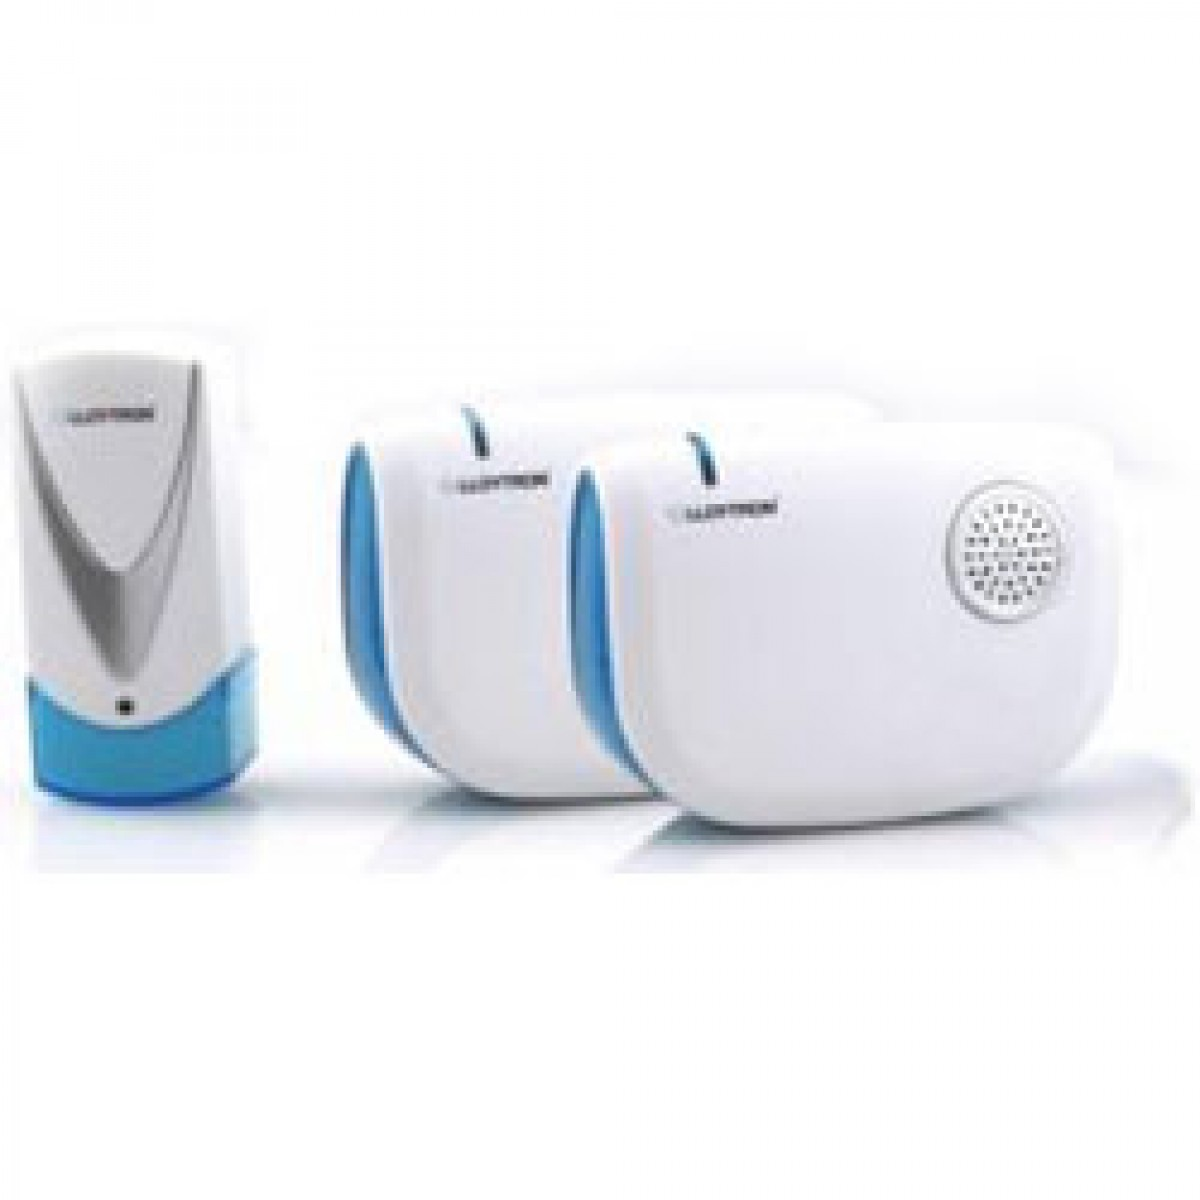 Lloytron Dual Cordless Battery Operated Door Bell Chime